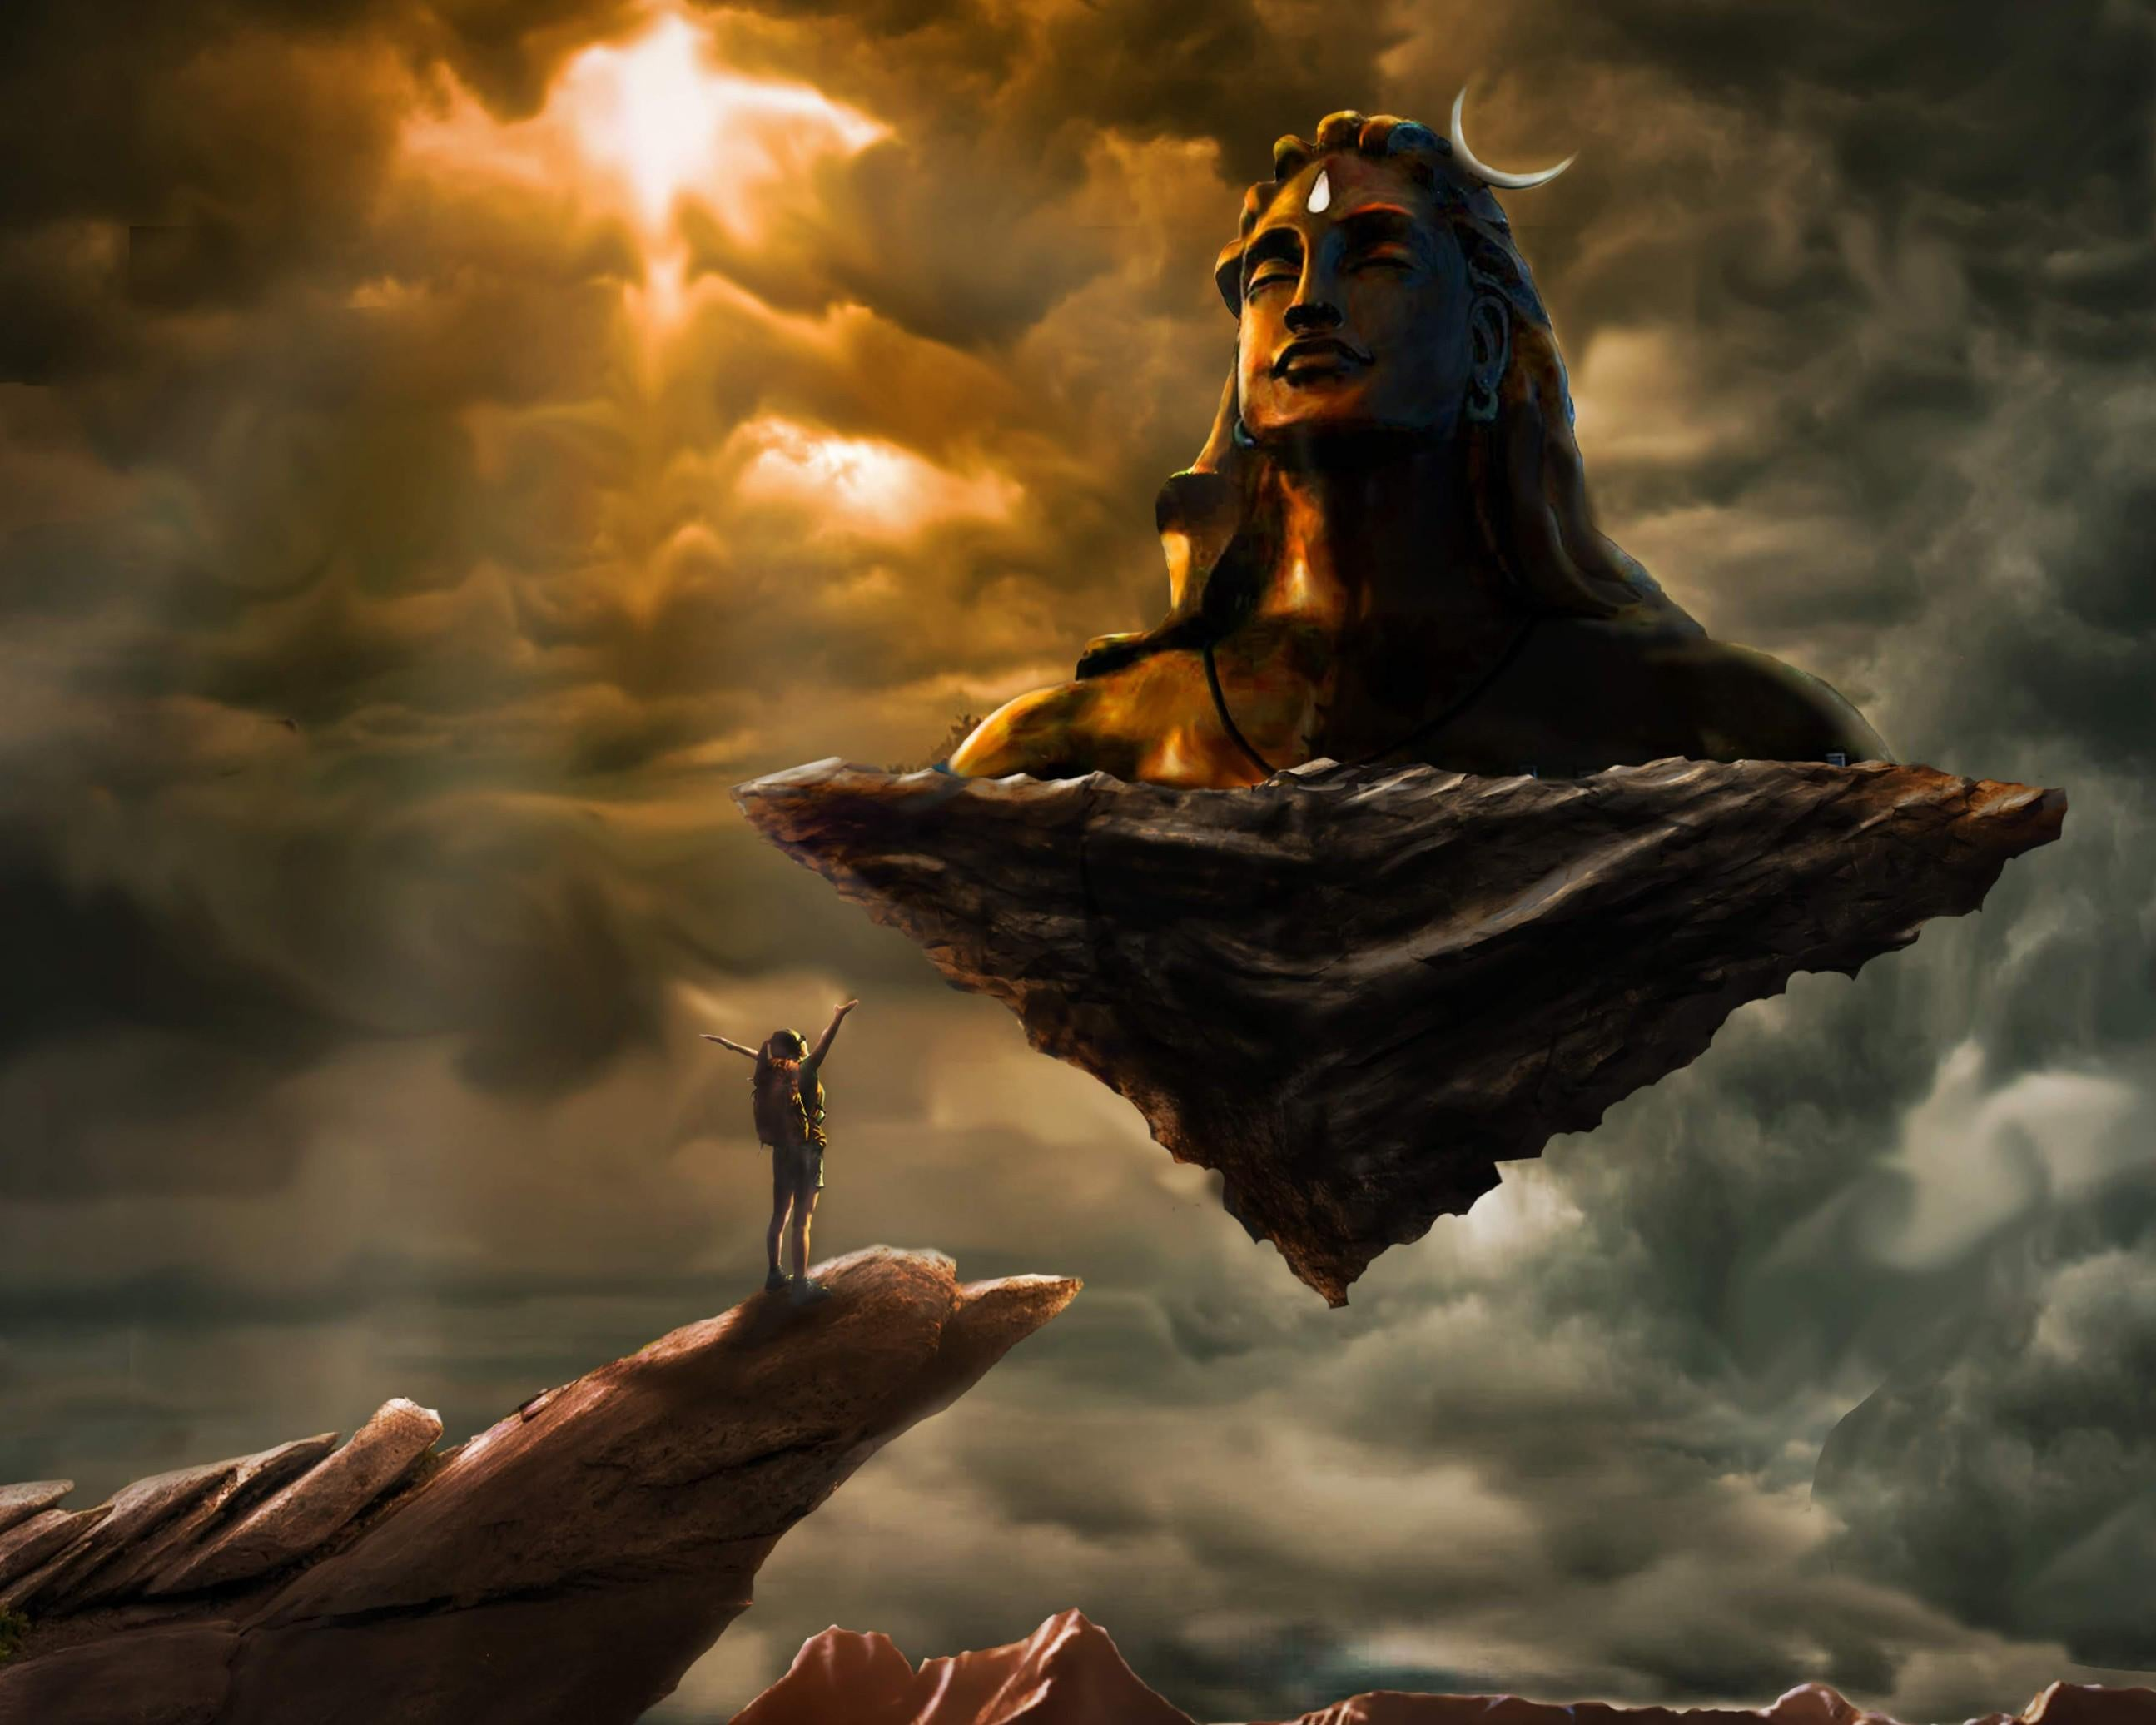 Shiva 4K wallpapers for your desktop or mobile screen free ...